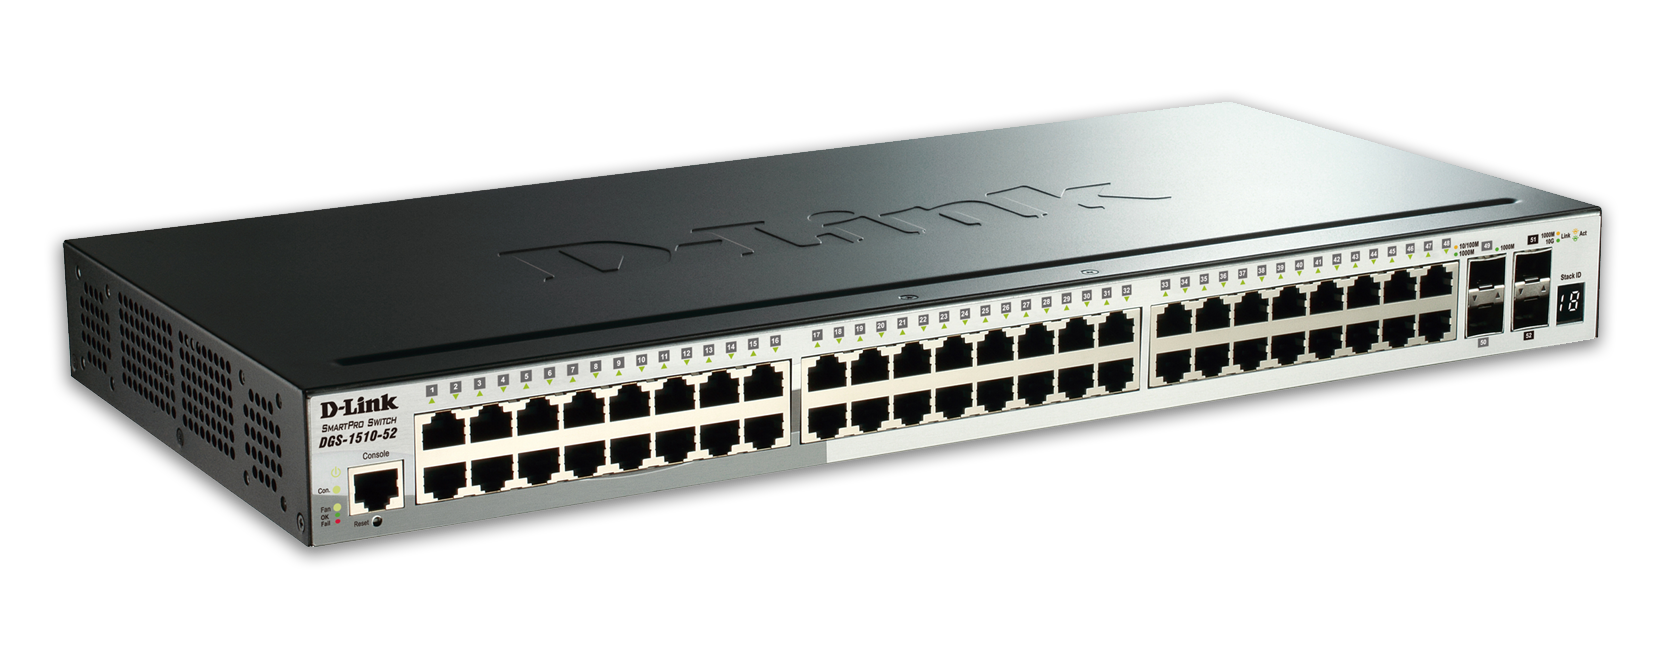 D-Link DGS-1510-52 Switch 48xGbit + 2xSFP + 2xSFP+